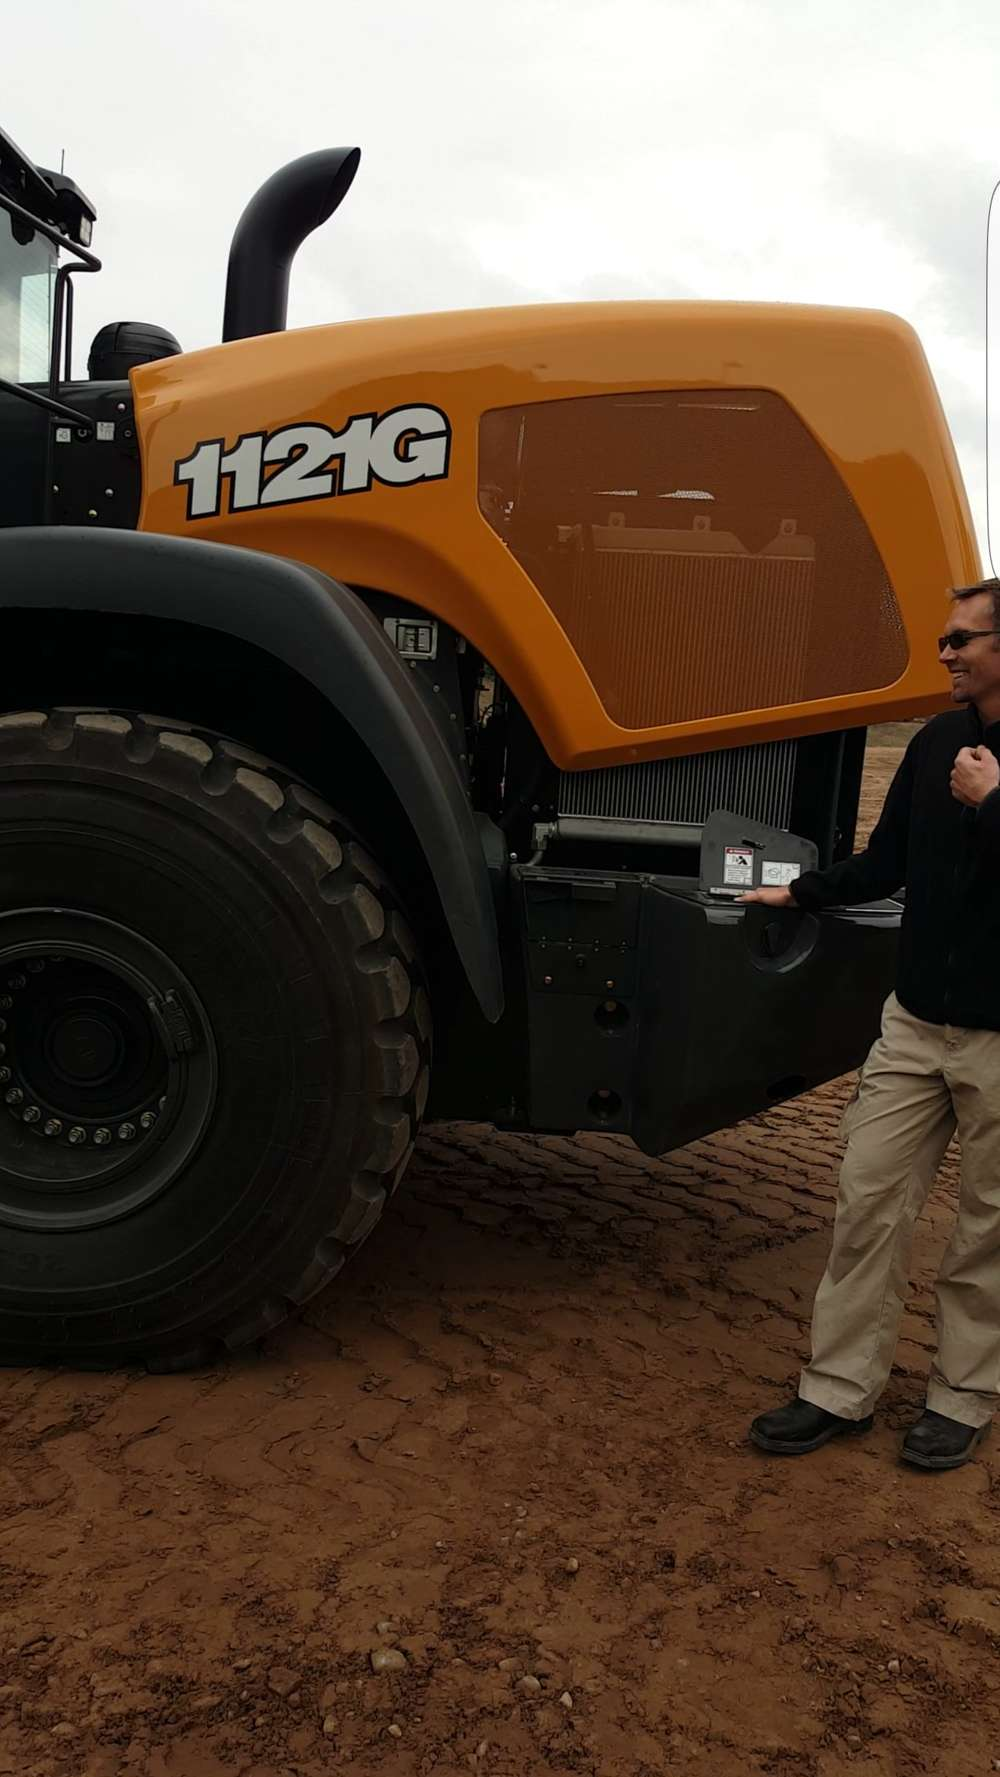 Andrew Dargatz, brand marketing manager, wheel loaders, Case Construction Equipment, goes over the features of the Case 1121G wheel loader.